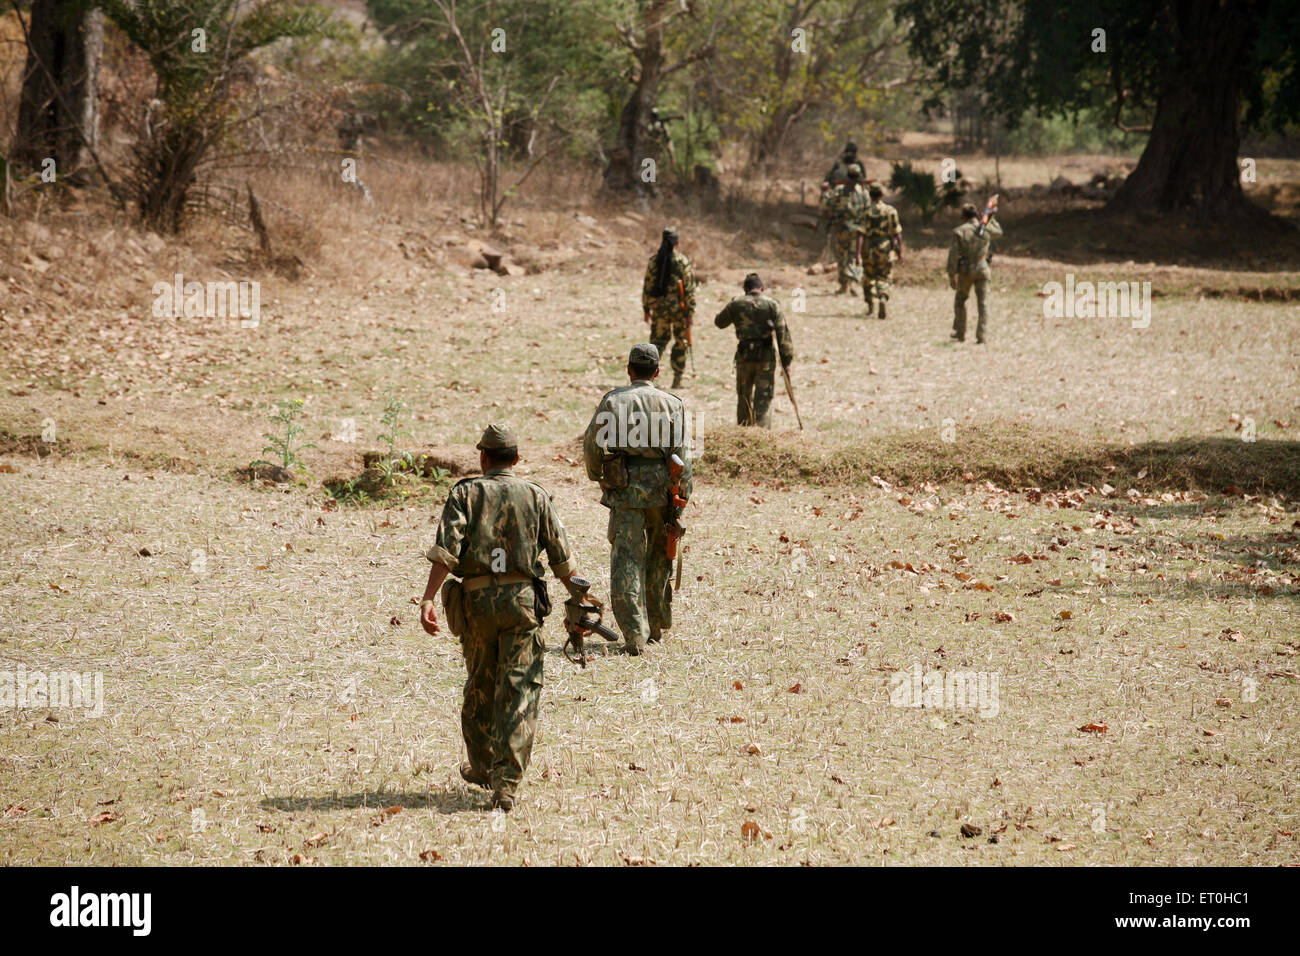 Central Reserve Police Force CRPF soldiers hunt for naxalites in forest of Jharkhand ; India - Stock Image